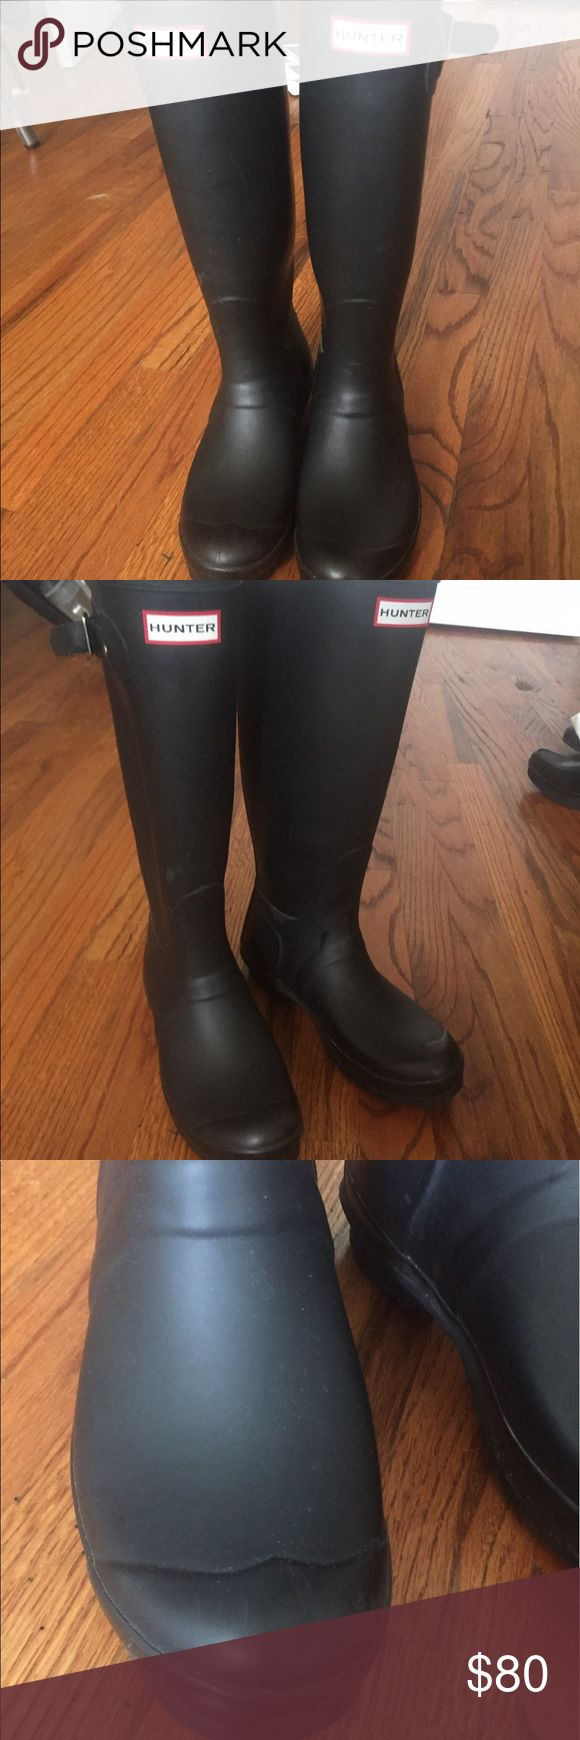 Classic Black Hunter Wellies tall rubber boots 37 These are the original, classic real deal Hunter wellingtons. These are a size 7 and fit true to size, with maybe just a little bit of wiggle room for thick socks. They're gently worn - wear as shown in the pictures. It's all wear that would be expected on a pair of boots, but I'm still very open to negotiating on price on these. They're matte black and look super cute with skinny jeans & a sweater. There's really no wrong move here - they…